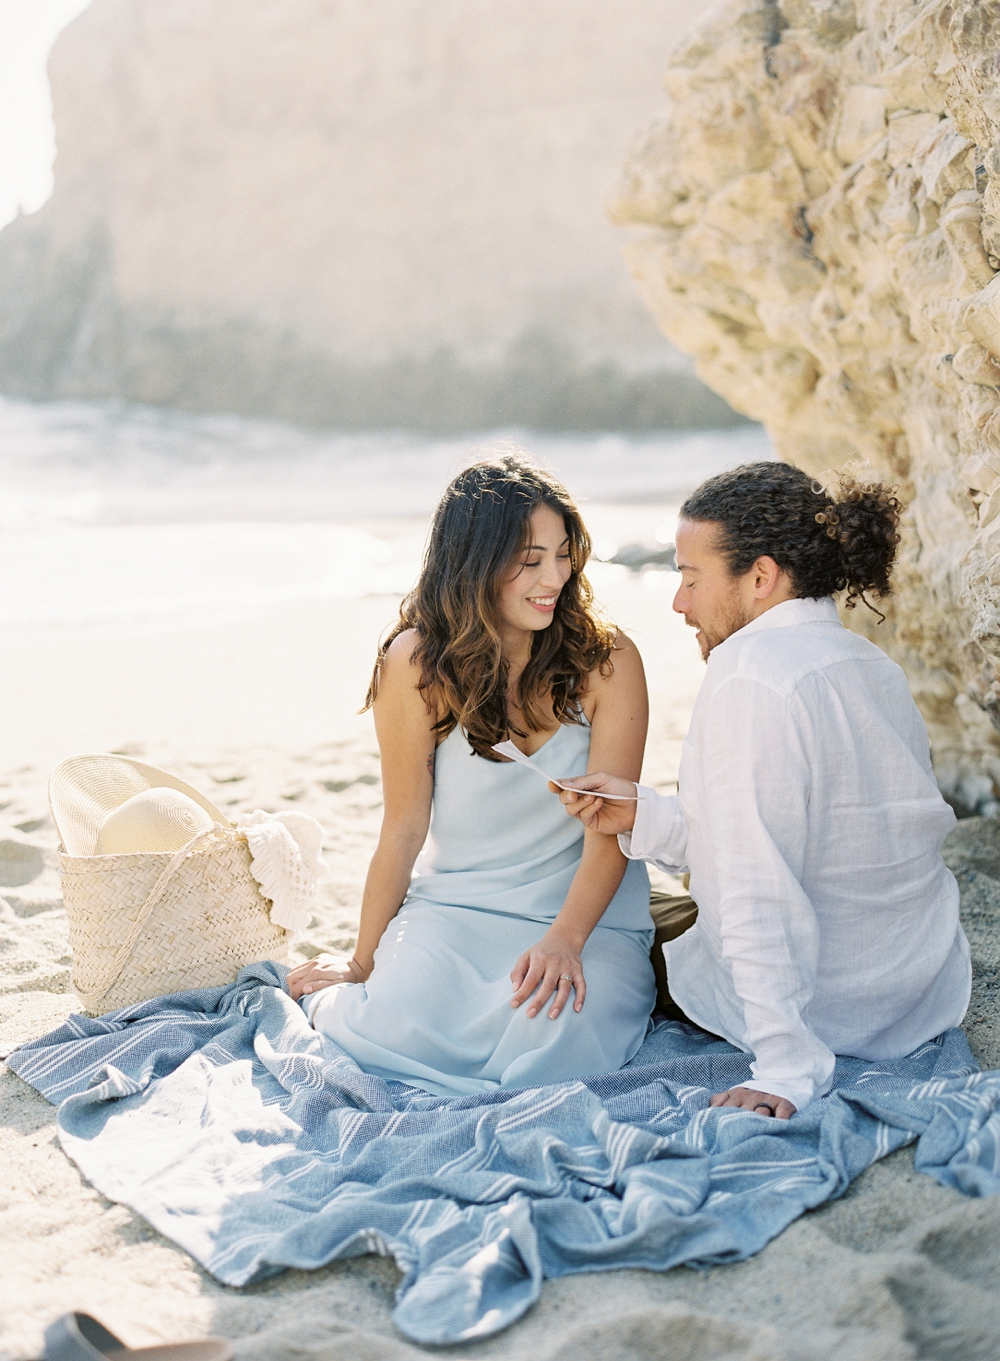 Vicki Grafton Photography | Fine Art Film Wedding Photographer | CA Santa Cruz Fine Art Film Wedding Photographer | San Francisco Bay Area Wedding Photographer_0021.jpg